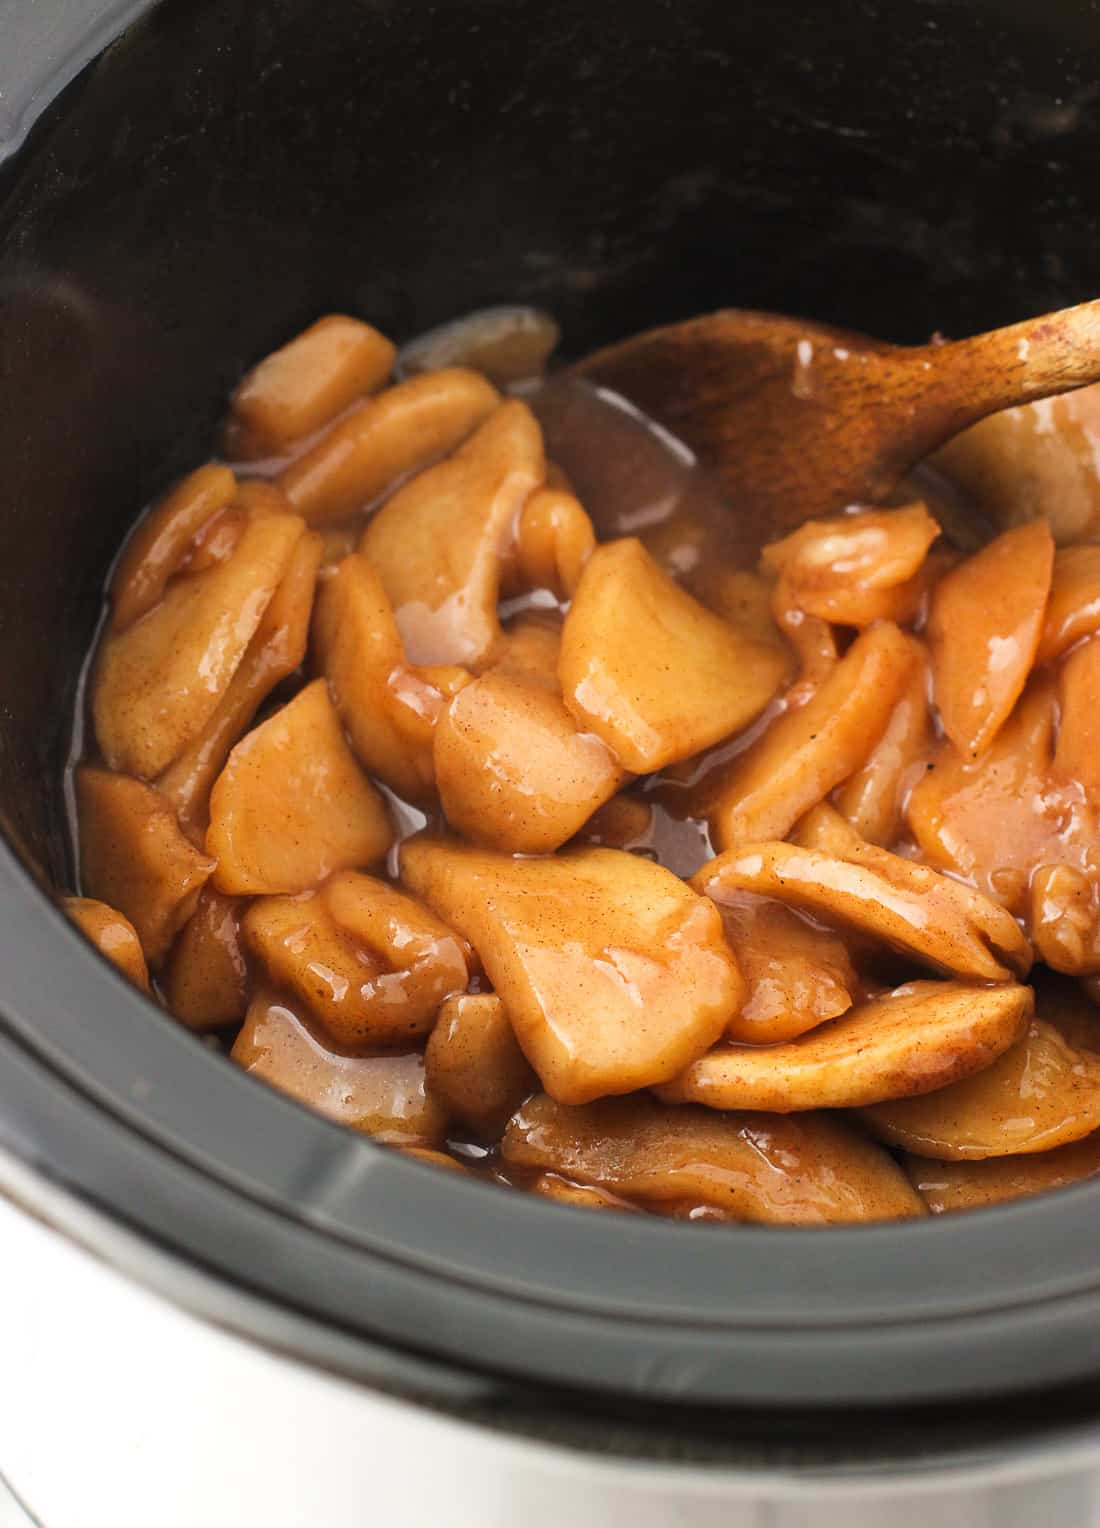 Stewed apple slices in a slow cooker with a wooden spoon.